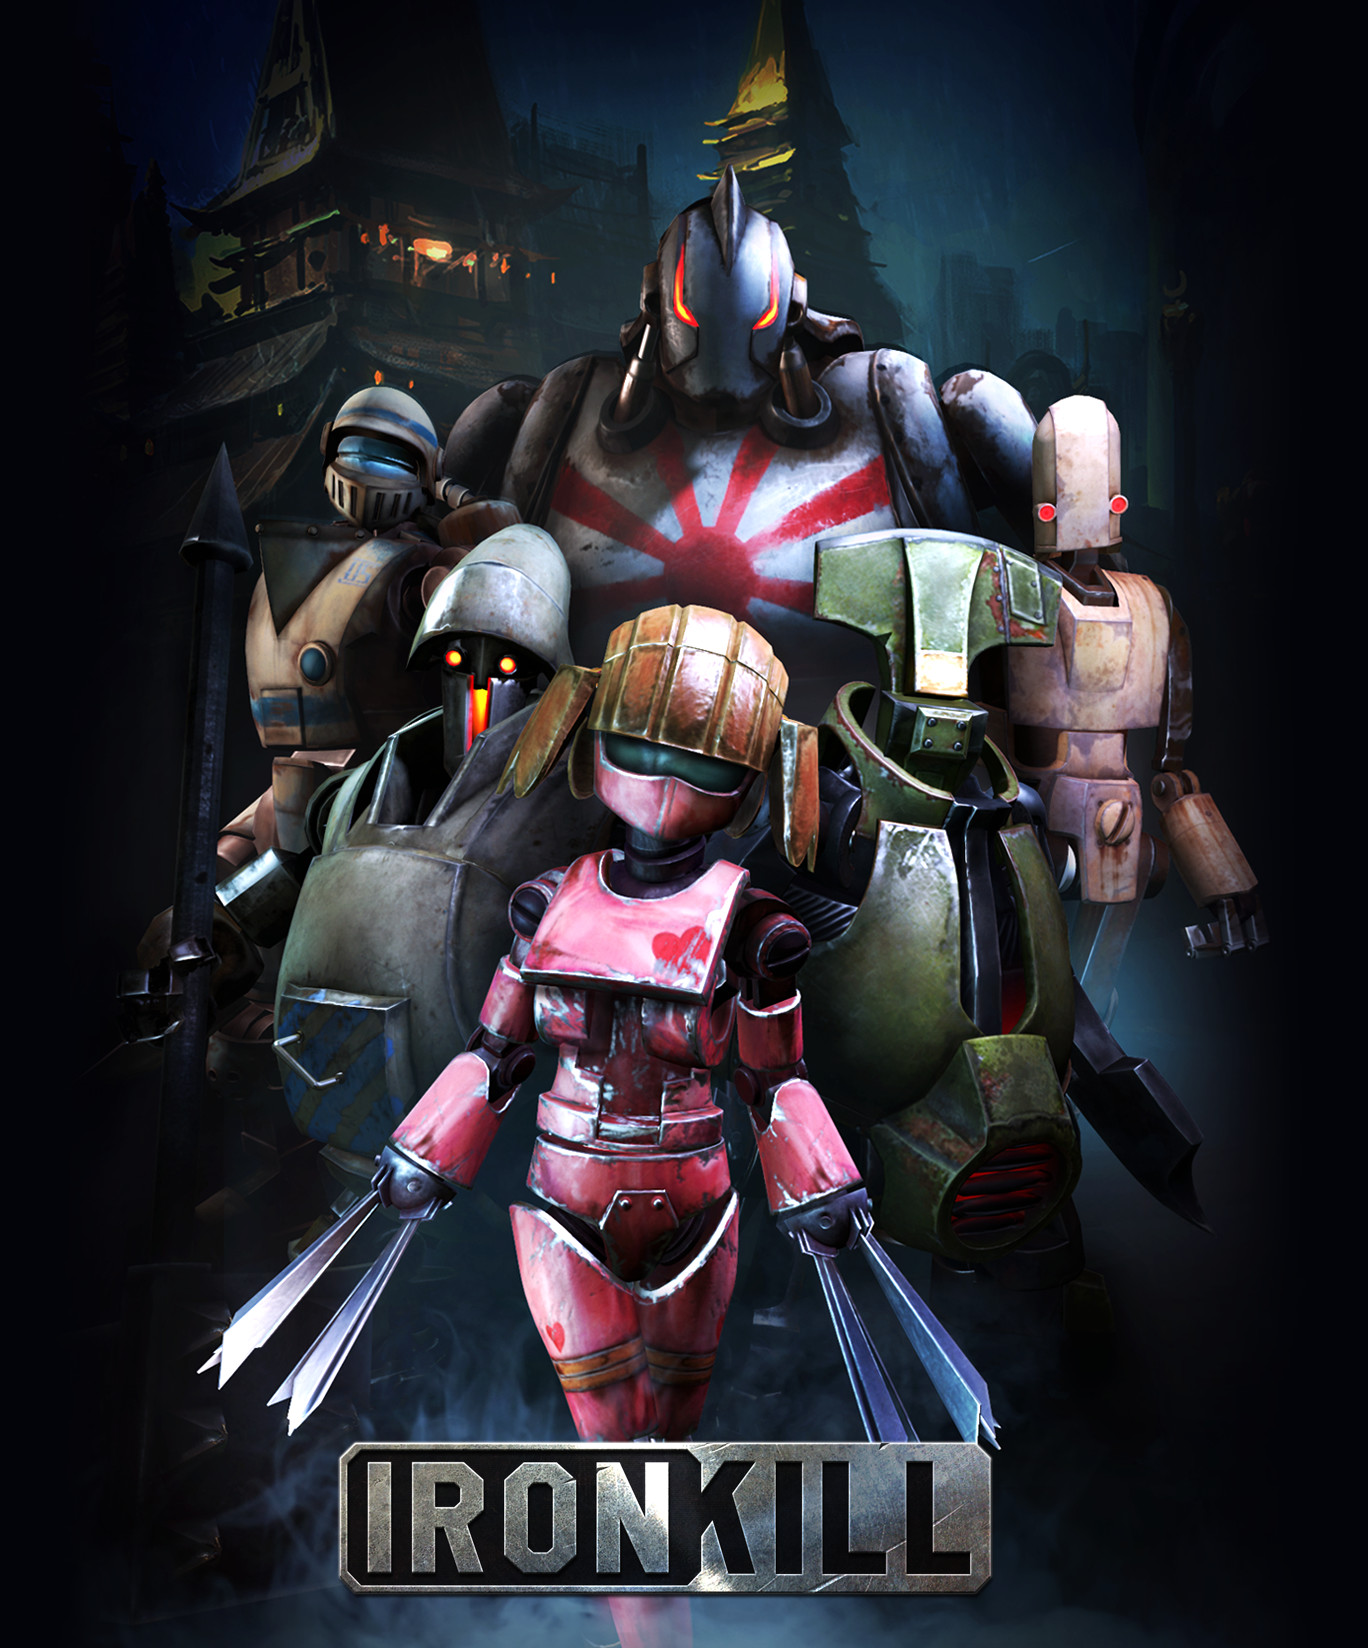 ironkill robot fighting game